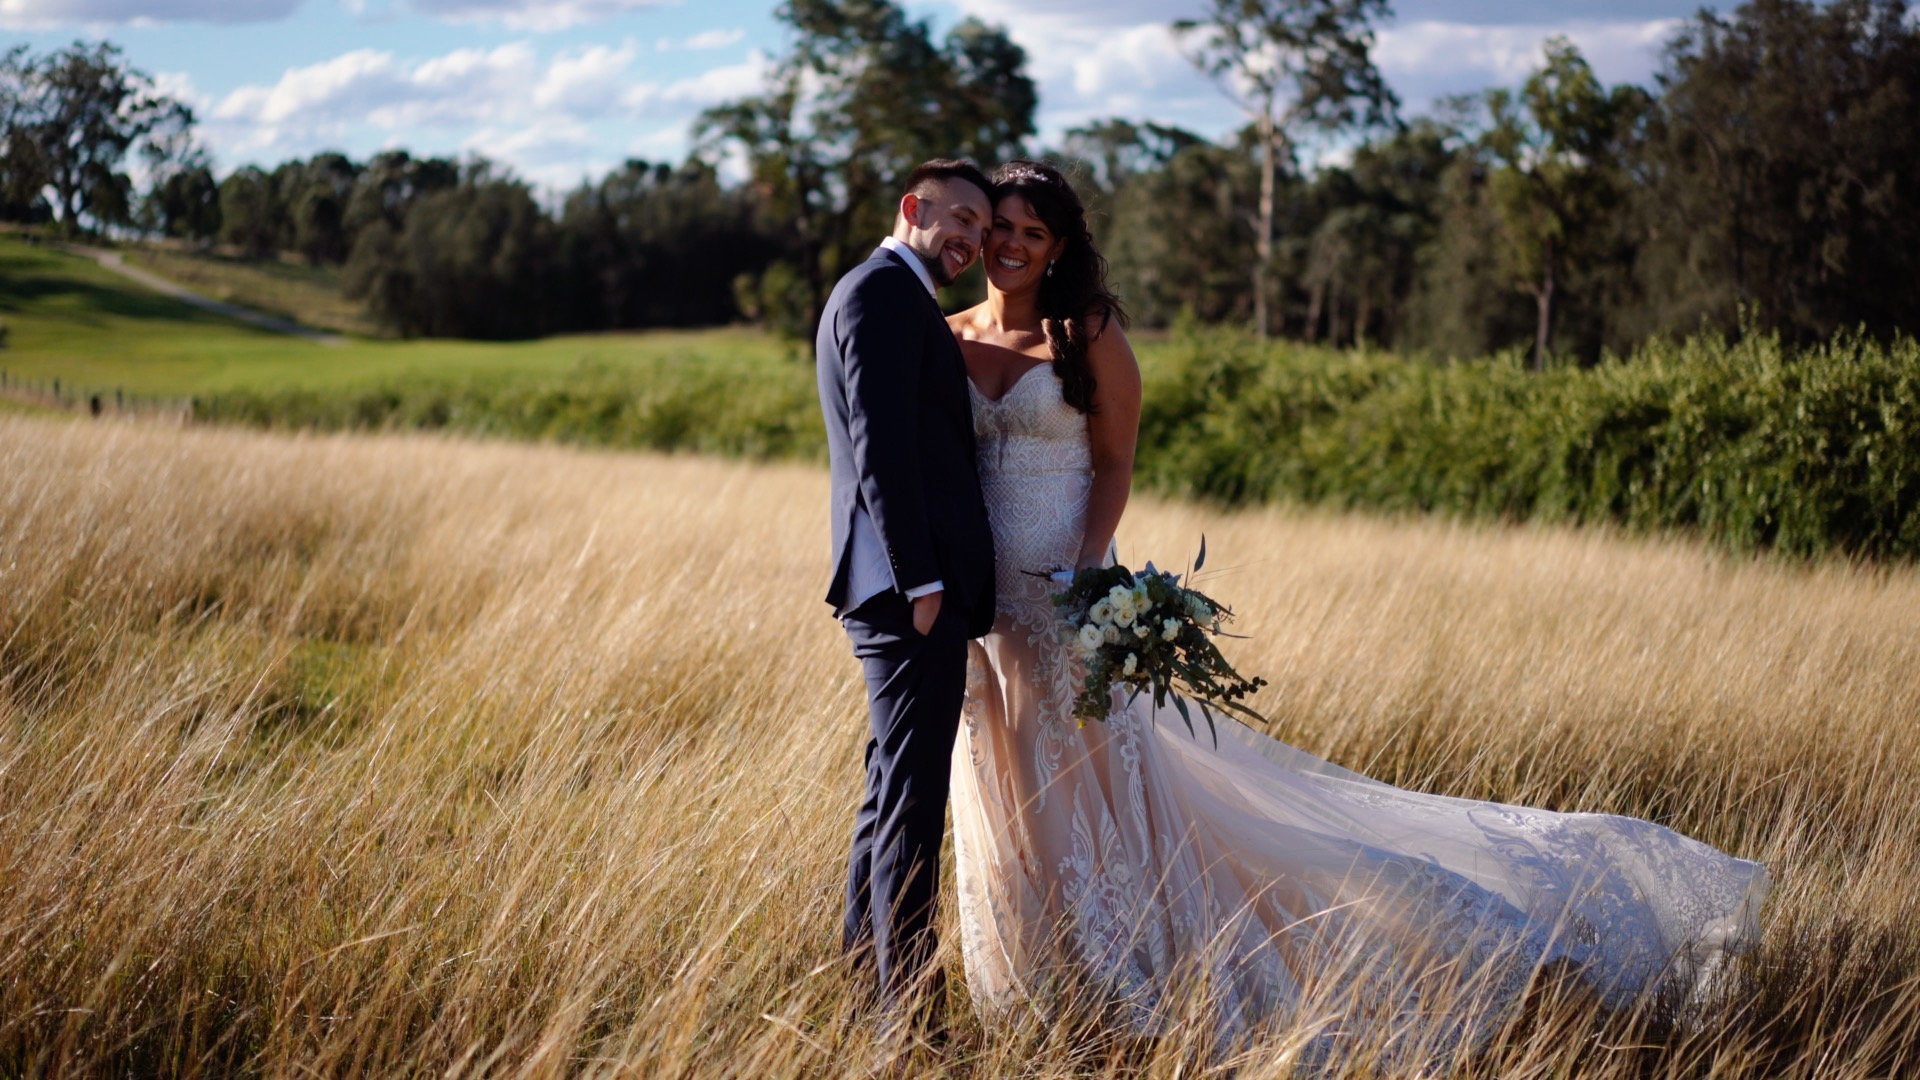 Fiona + Will |  Sydney, New South Wales, Australia, | Gledswood Homestead & Winery